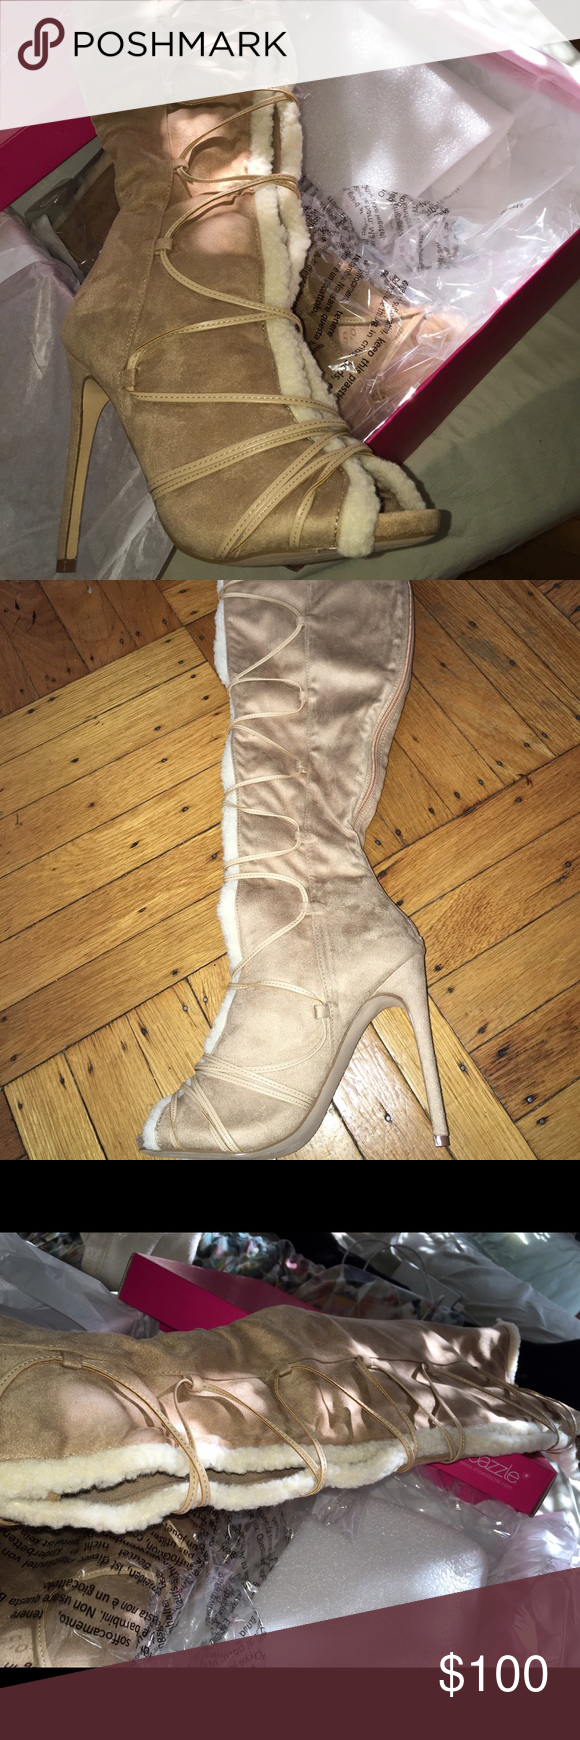 NEW❤️ Nude Knee High Booties!!! Worn Once!! Nude Wool Lined interior, zipper back, Size 7 Shoes Over the Knee Boots